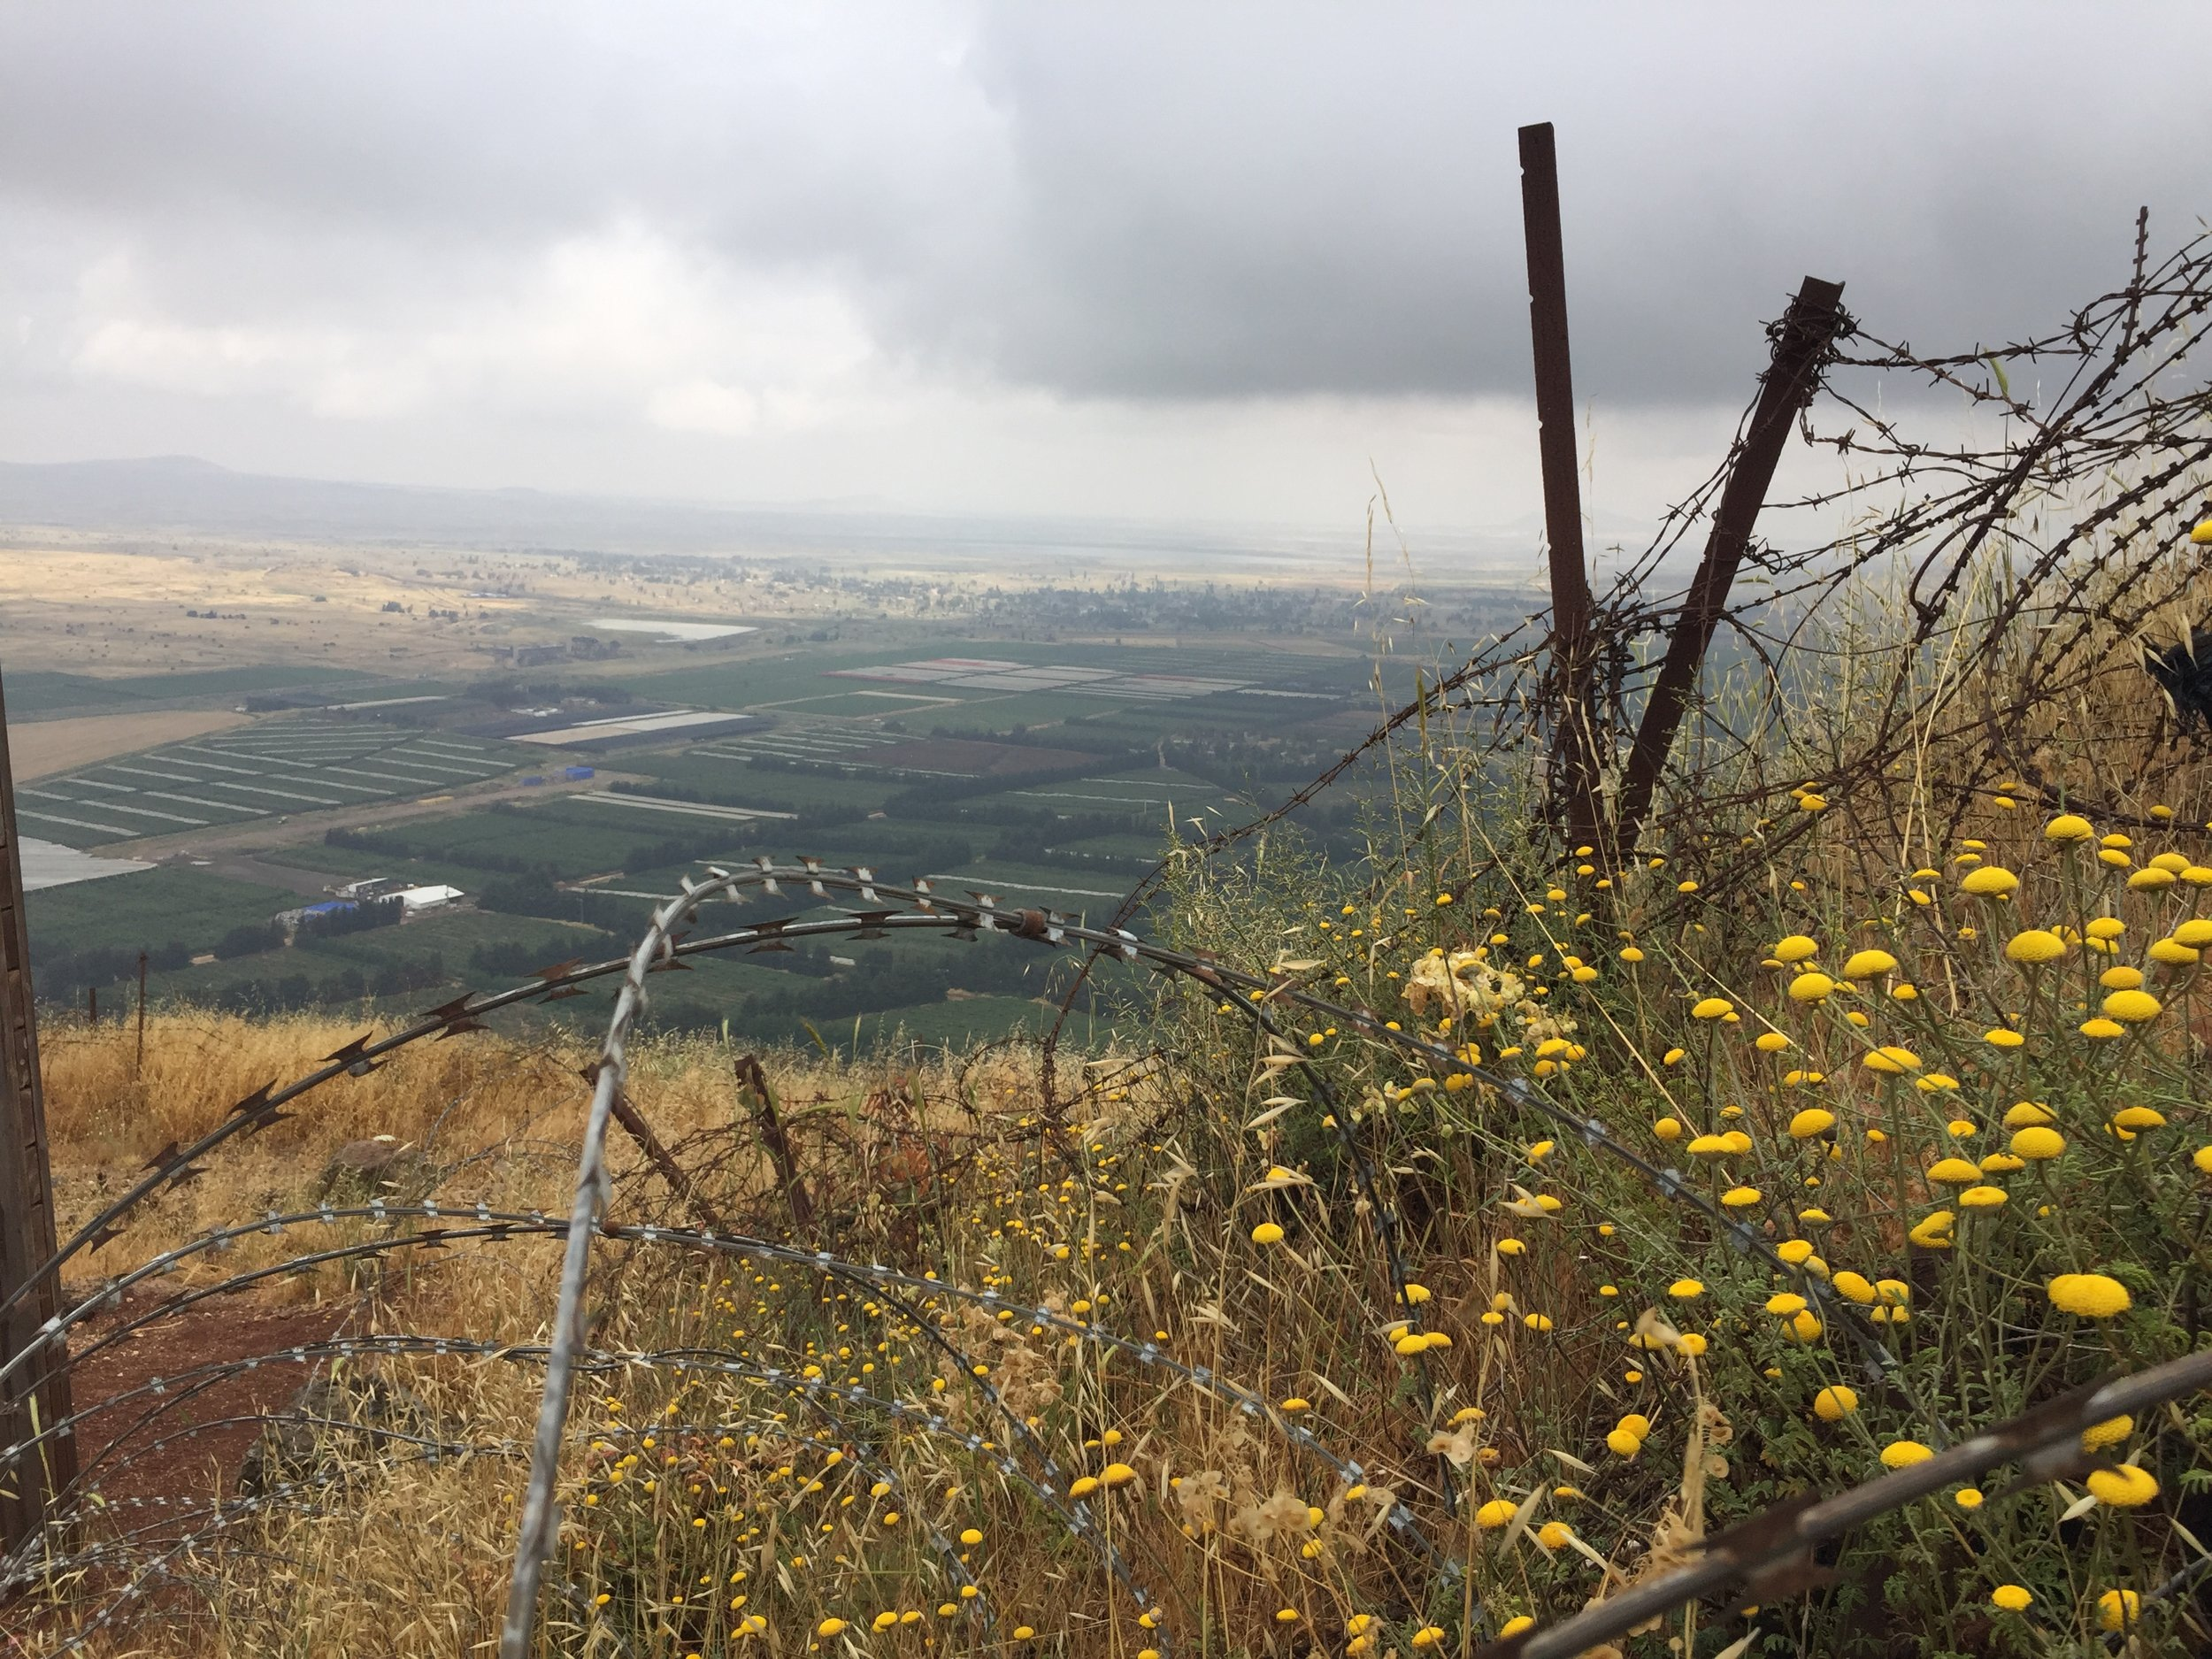 © Matthew Williams/The Conflict Archives: The Occupied Golan Heights overlooking the Quneitra ( Muḥāfaẓat Al-Qunayṭrah)  province.